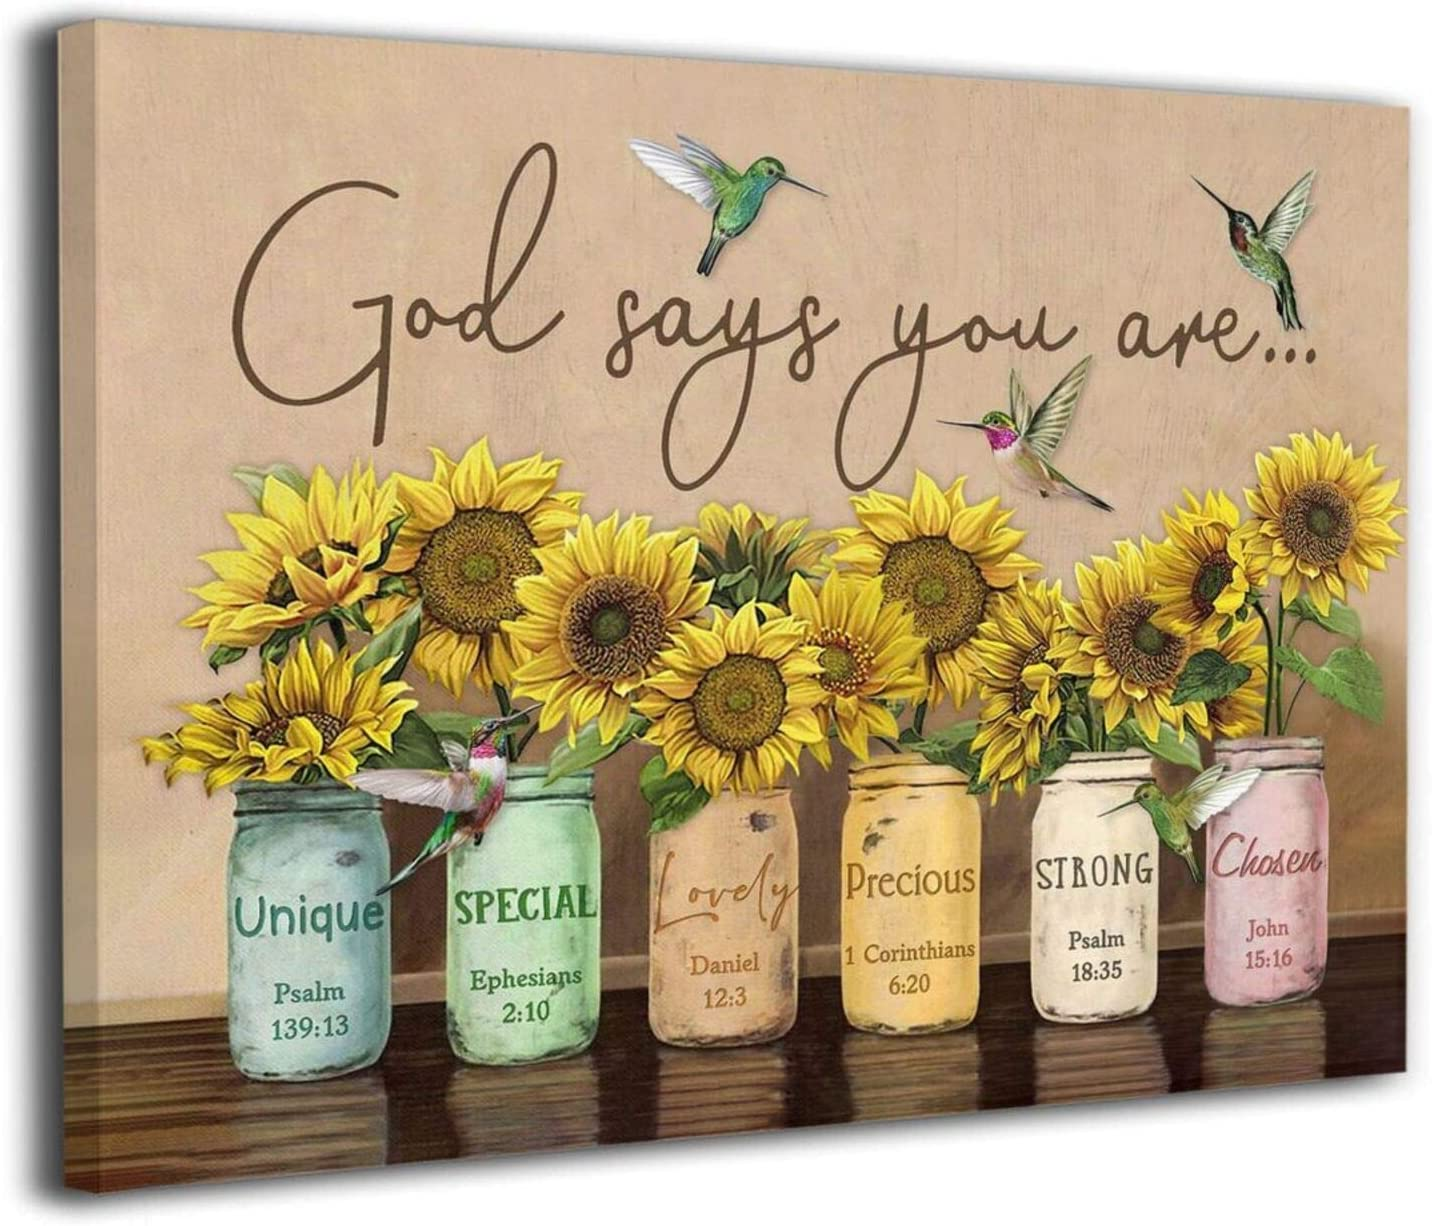 BEEPBOOP God Says You Are Hummingbird Sunflower Canvas Wall Art Prints Room Decor For Home Office Apartment Wall Decor Unframed Poster Wall Decoration Ready To Hang 12x8 In